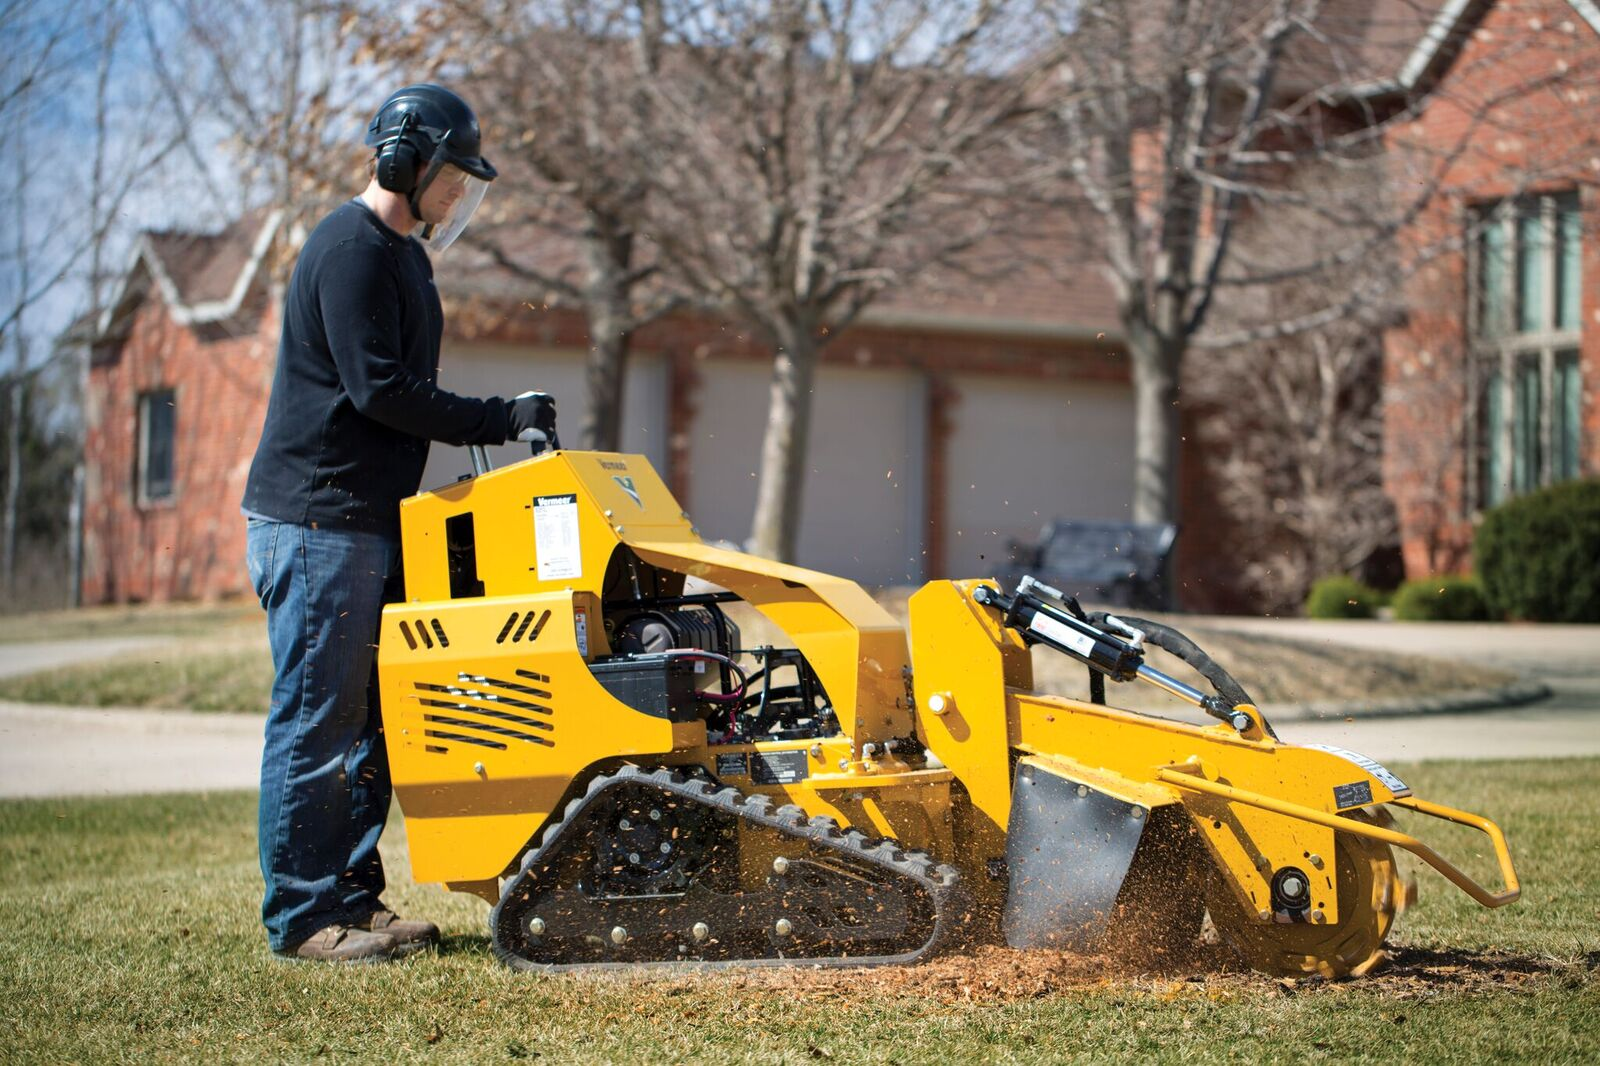 Kerman-Fresno Tree Trimming and Stump Grinding Services-We Offer Tree Trimming Services, Tree Removal, Tree Pruning, Tree Cutting, Residential and Commercial Tree Trimming Services, Storm Damage, Emergency Tree Removal, Land Clearing, Tree Companies, Tree Care Service, Stump Grinding, and we're the Best Tree Trimming Company Near You Guaranteed!